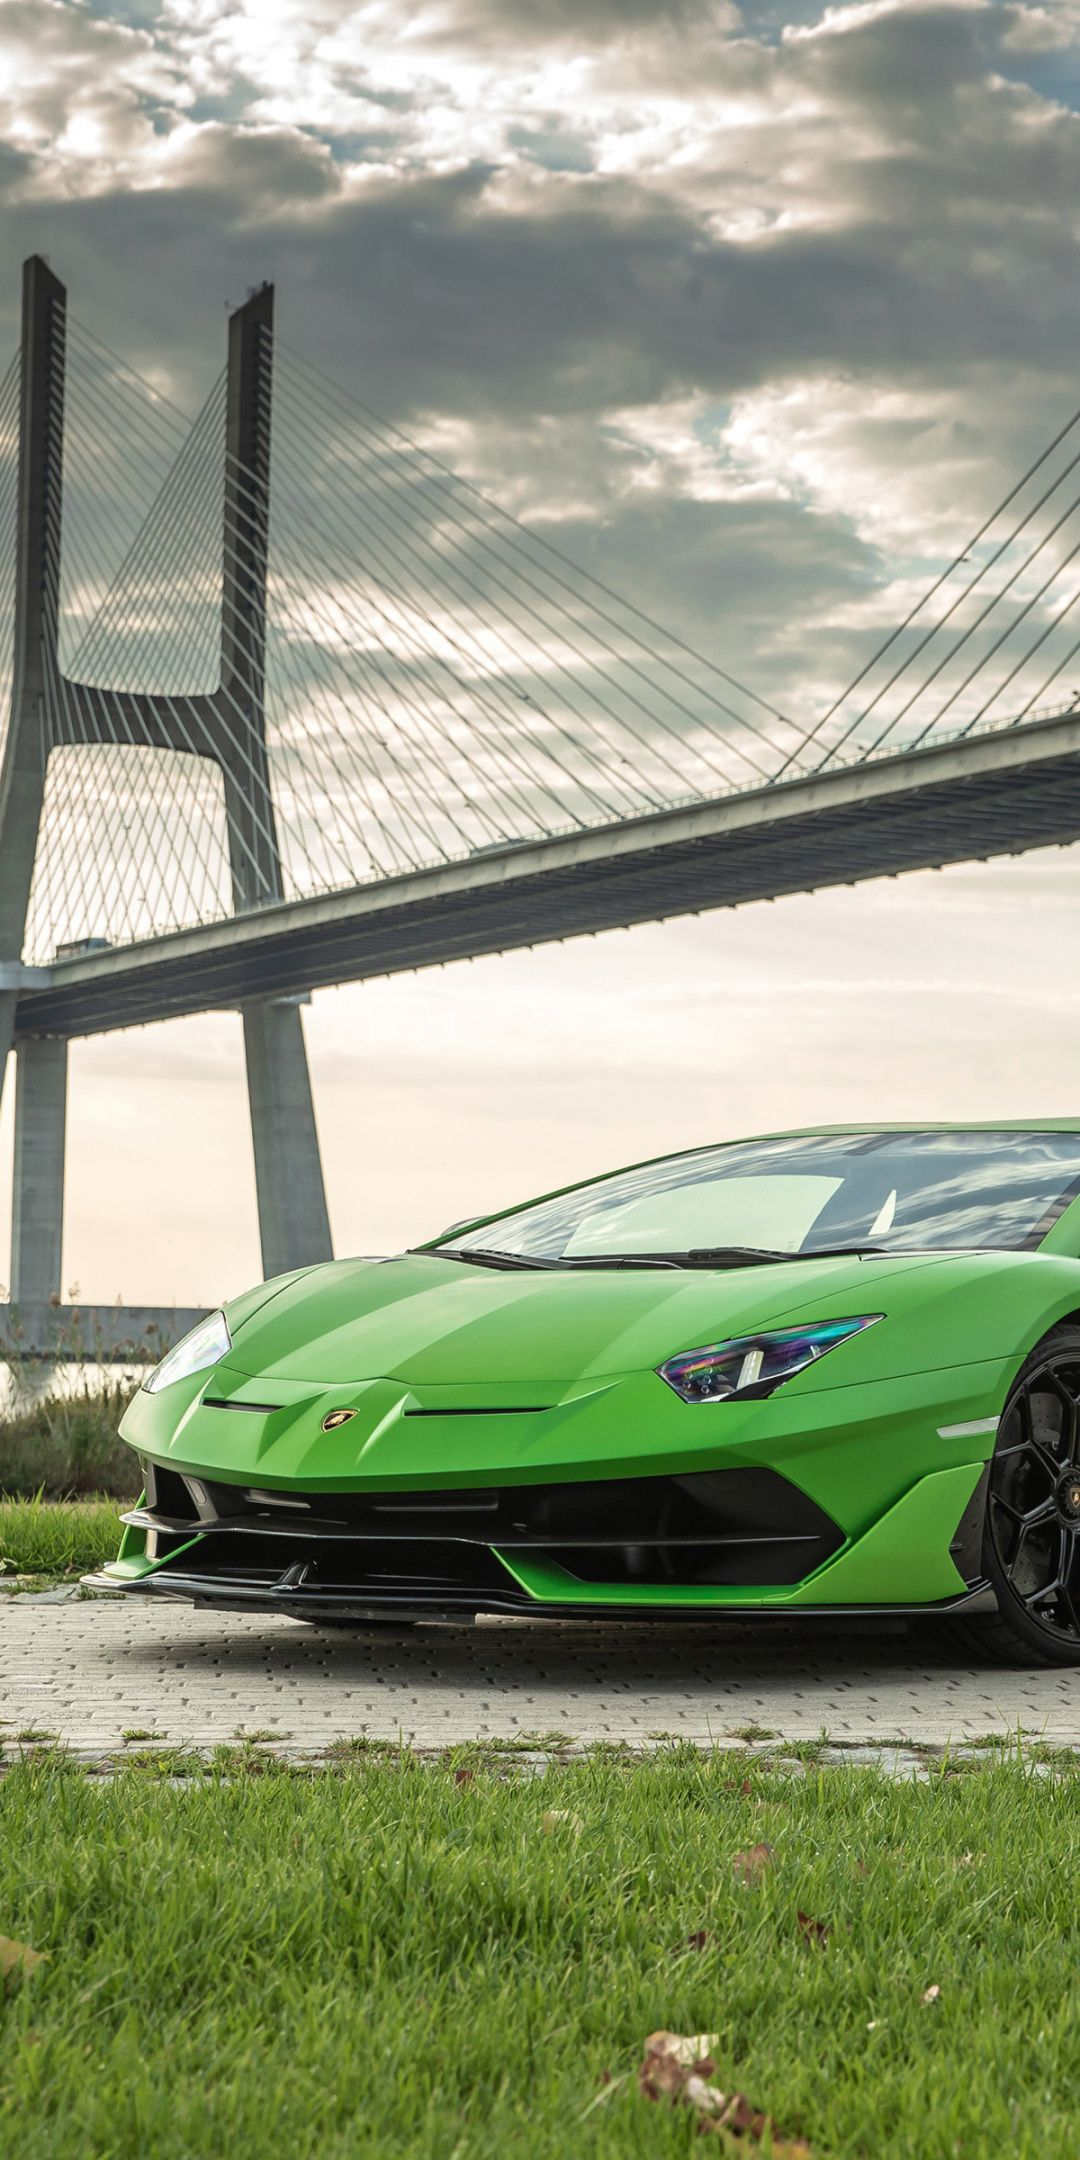 Green Sports Car Lamborghini Aventador Svj 1080x2160 Wallpaper Lamborghini Aventador Sports Cars Lamborghini Sports Car